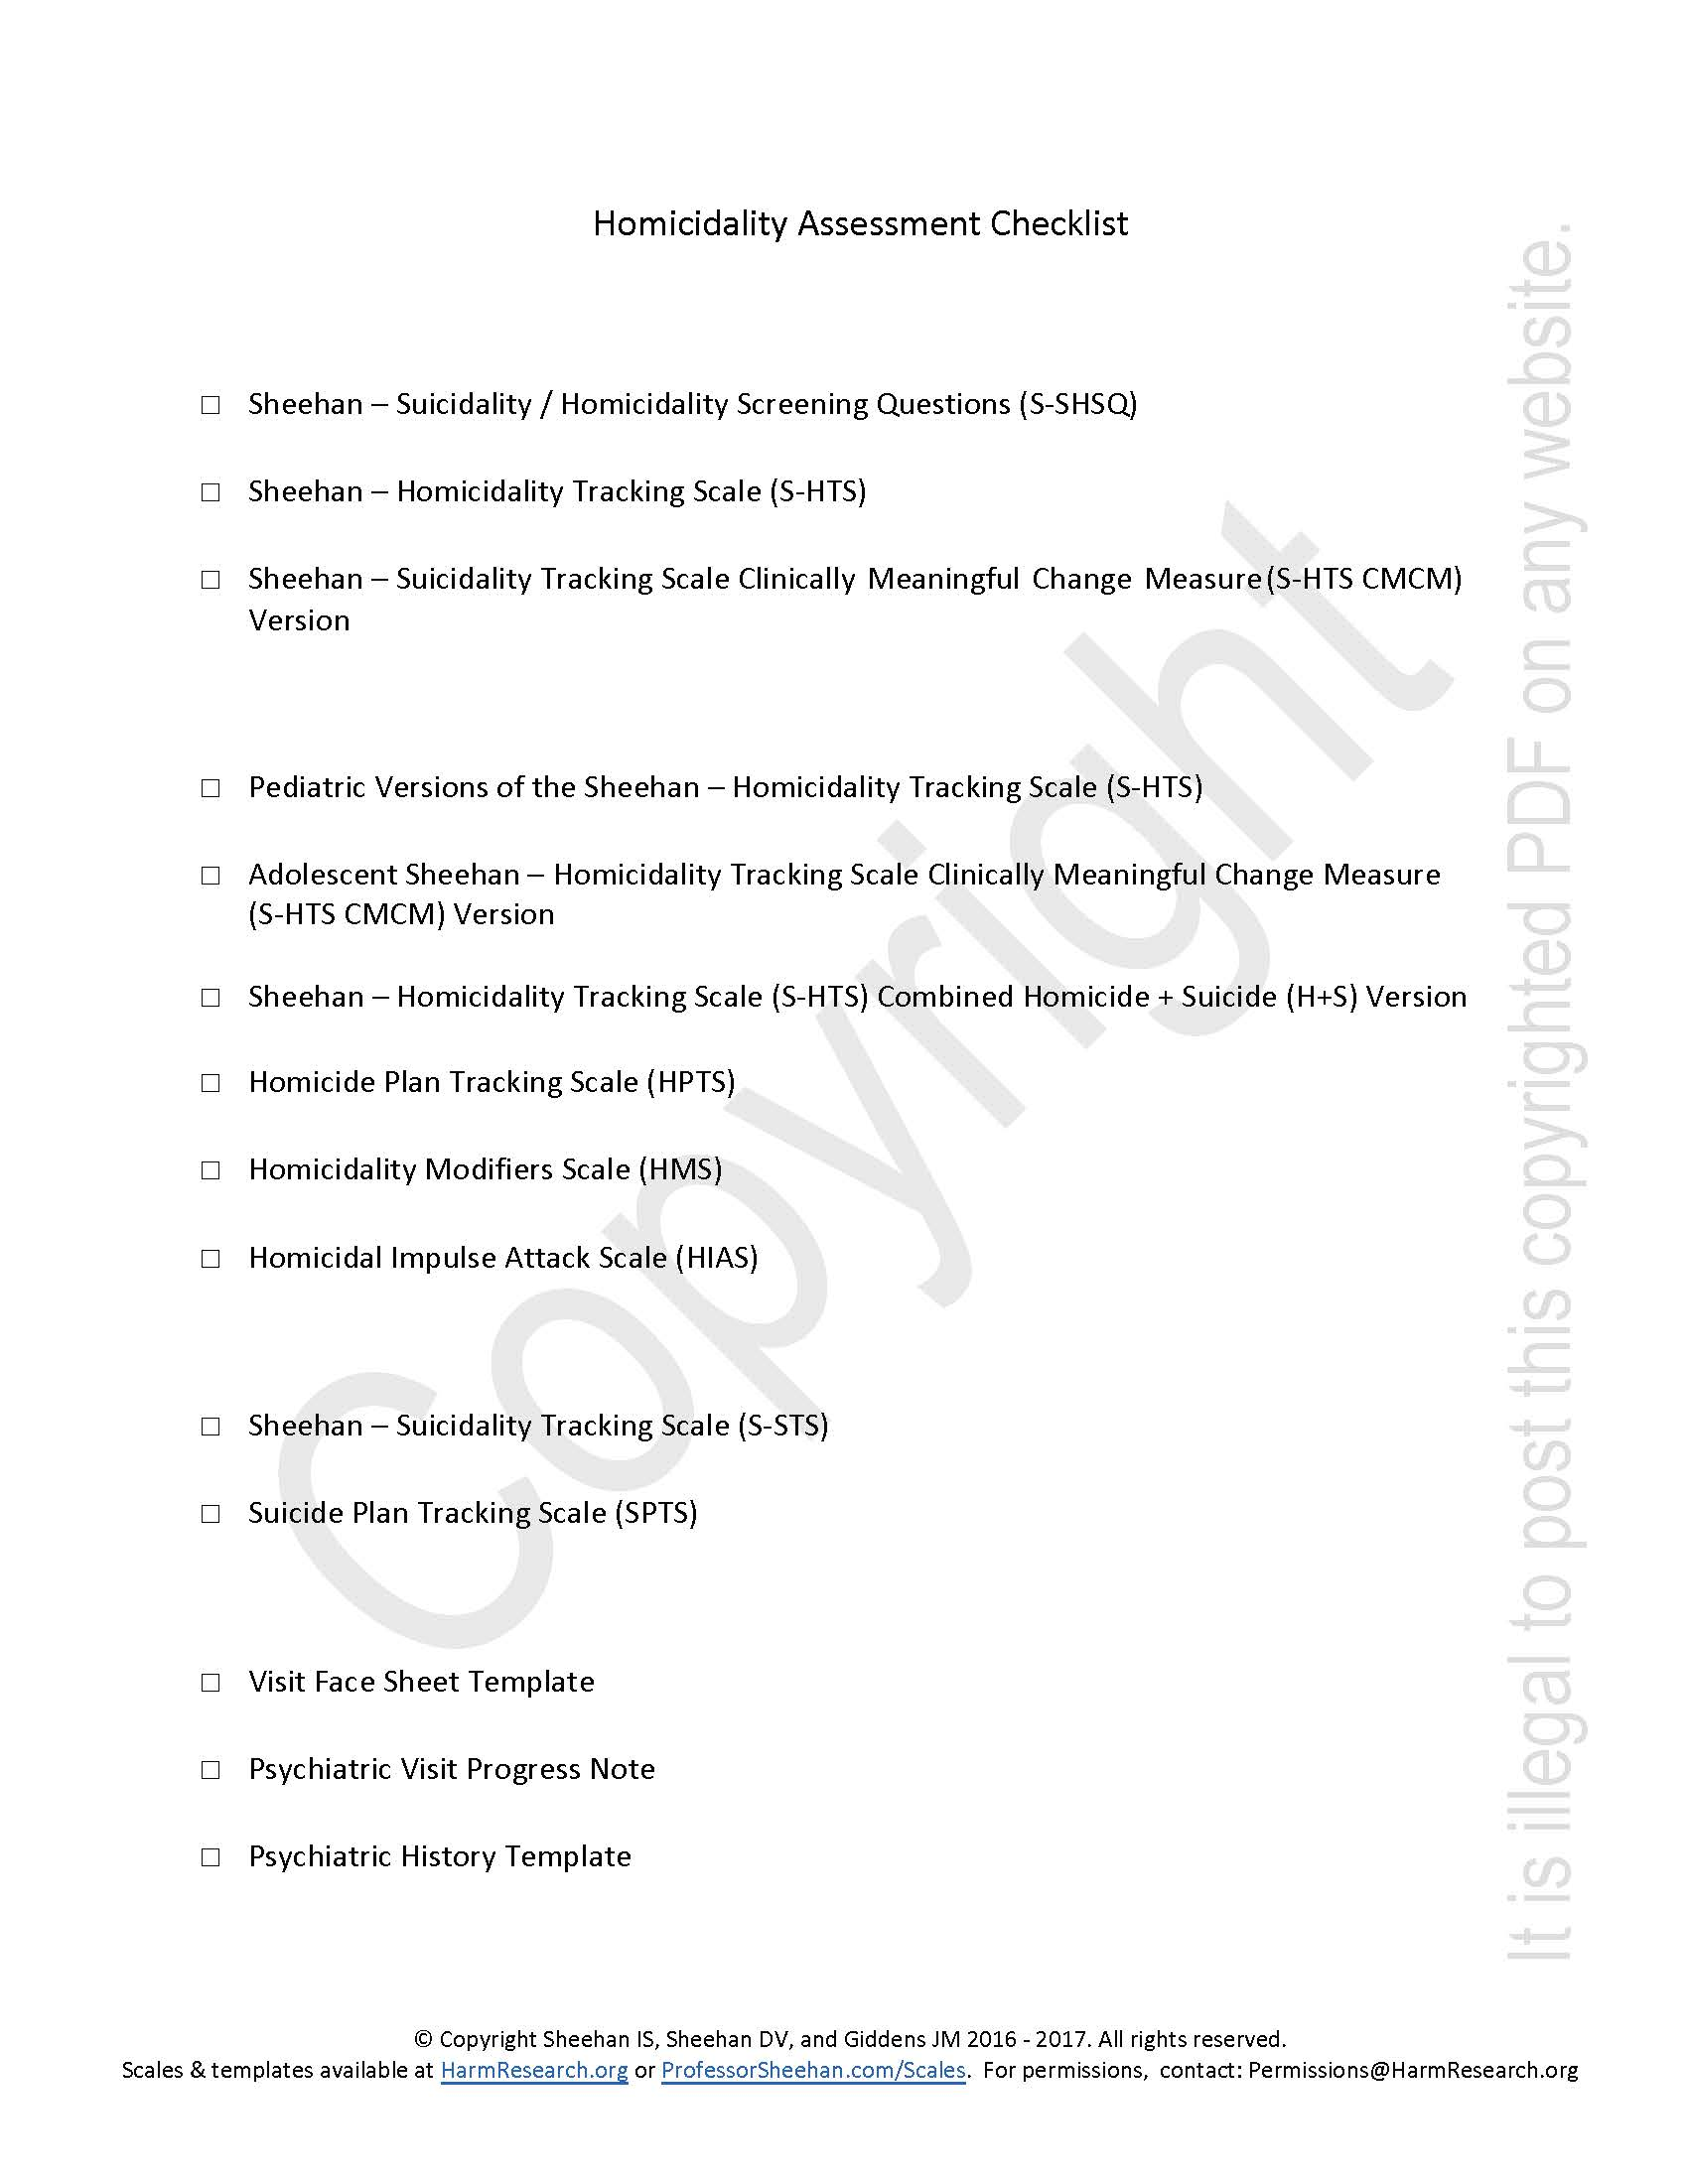 Homicidality Assessment Checklist – Harm Research